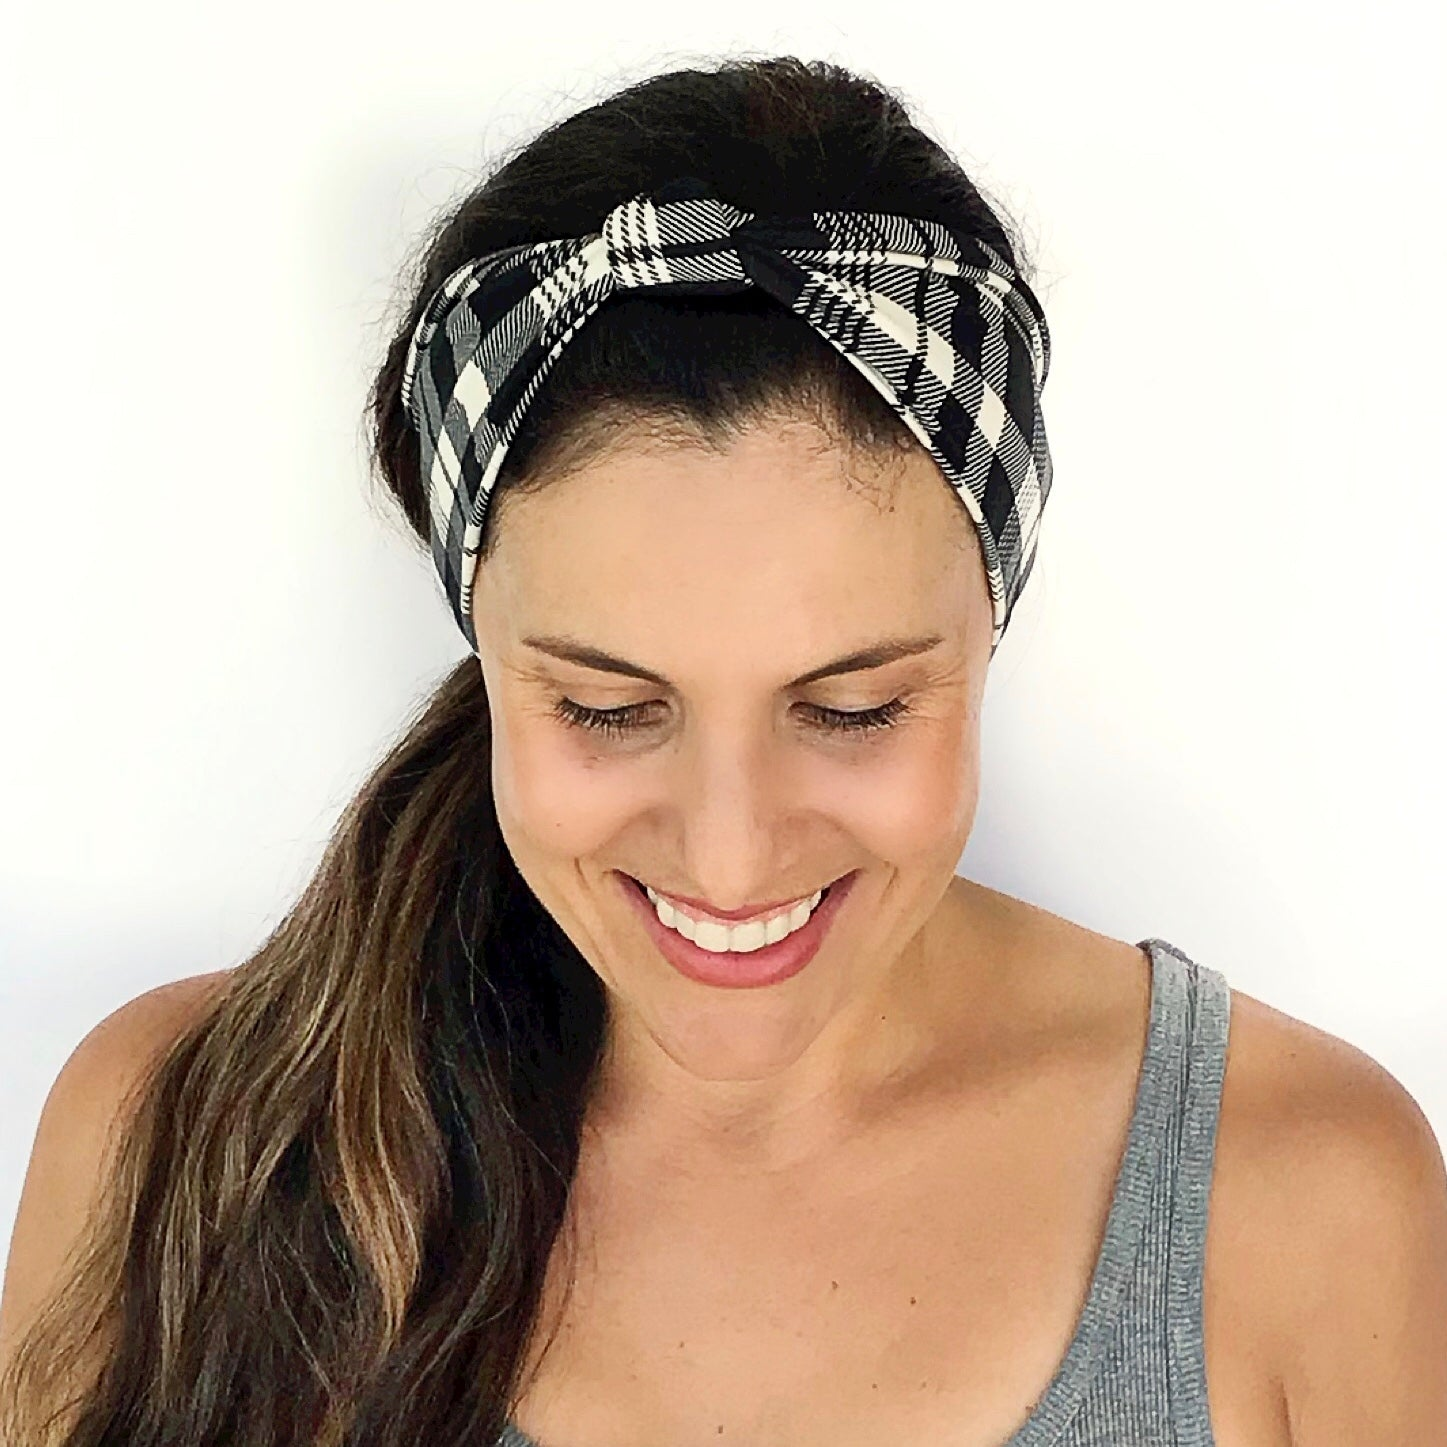 Brixton Knotted Headband